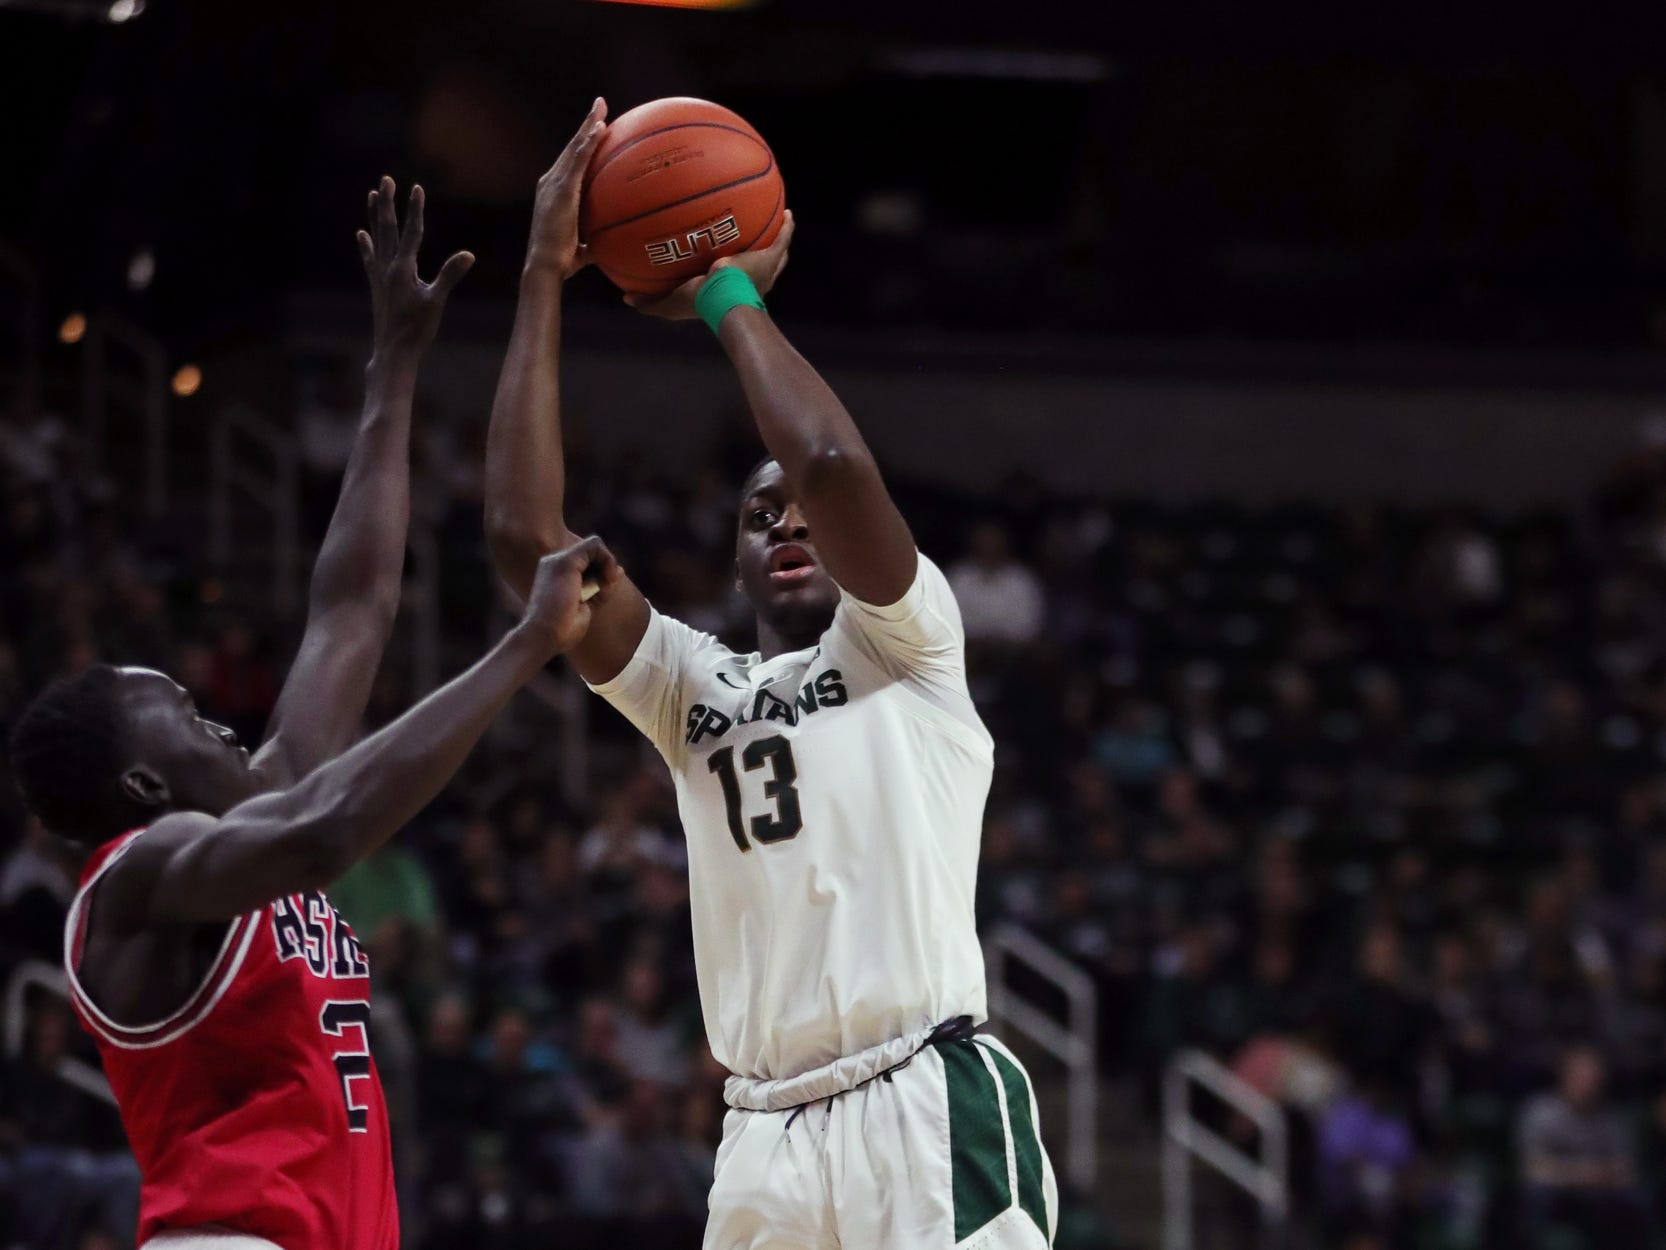 Michigan State forward Gabe Brown scores against Northern Illinois guard Gairges Daow during the second half Saturday, Dec. 29, 2018 at the Breslin Center in East Lansing.